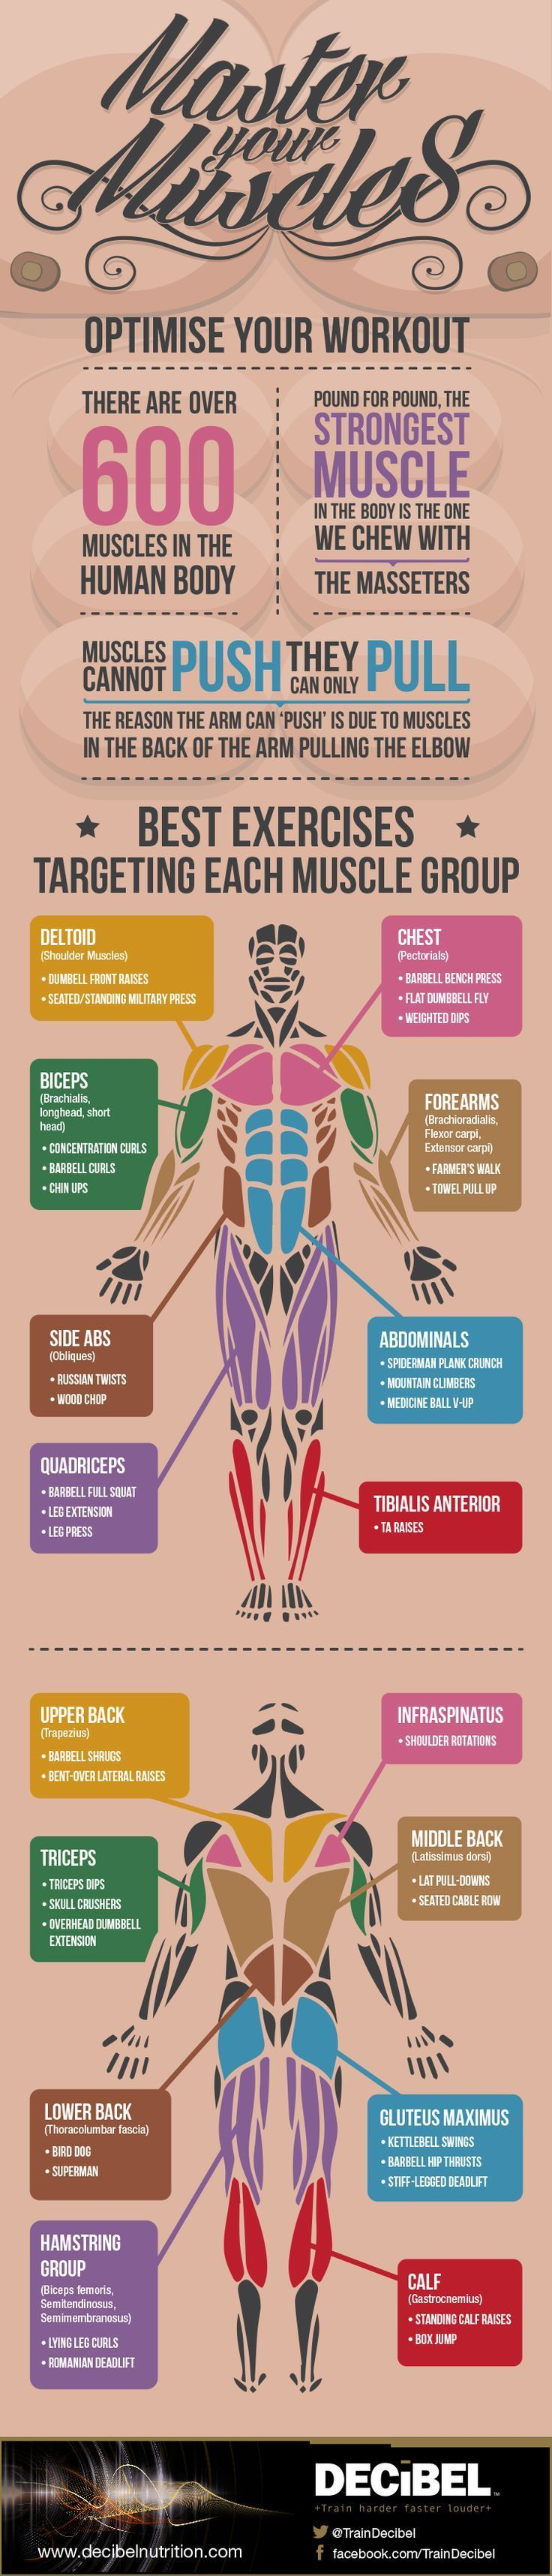 Master Your Muscles: Best Exercises For Each Muscle Group – Decibel Nutrition